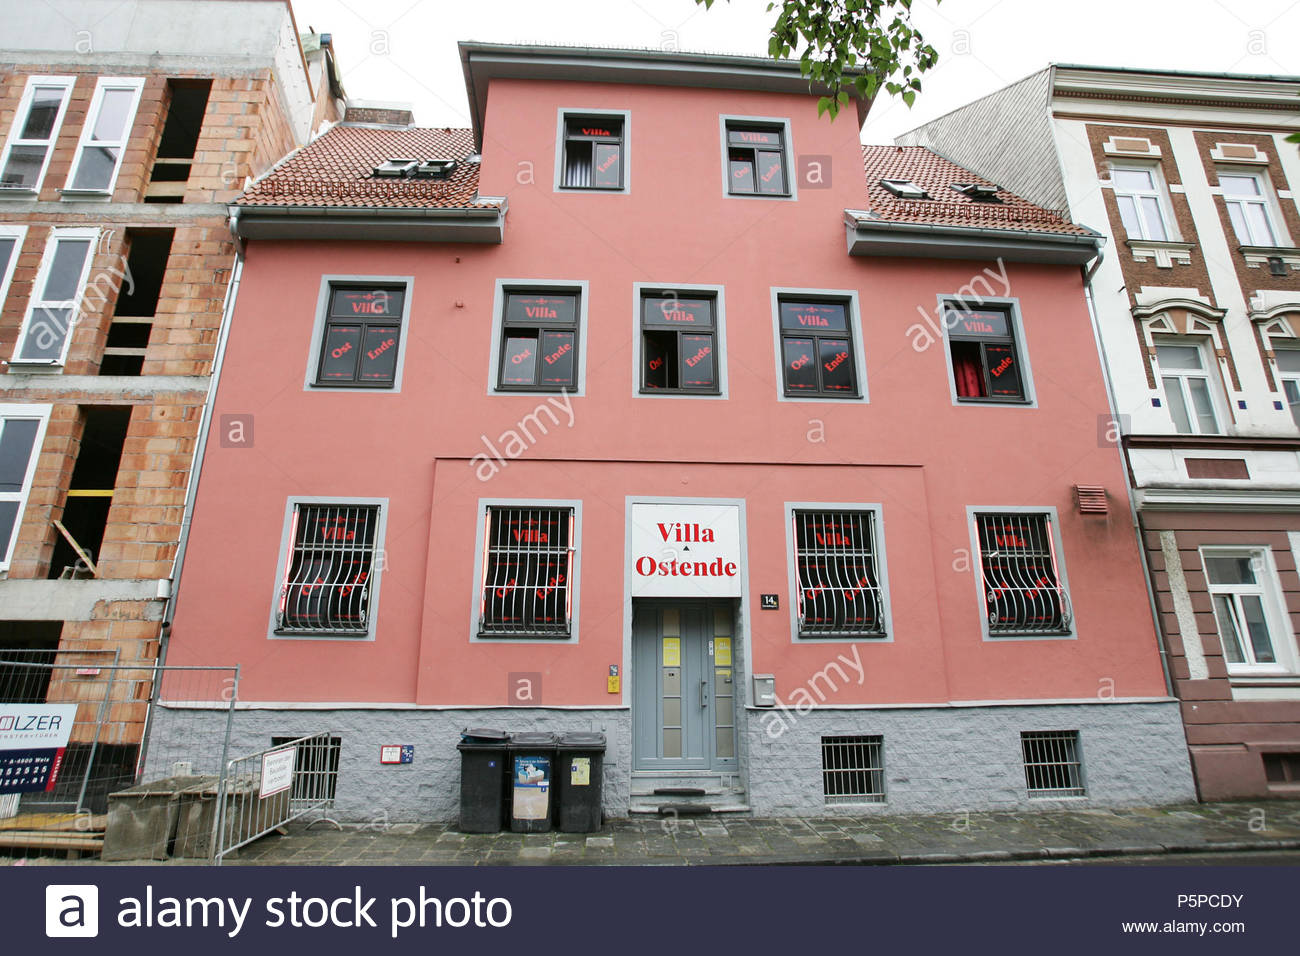 ... Villa Ostende in Linz Austria that Josef Fritzl frequented. The owner Peter Stolz is pictured inside with pictures of the Su0026M chambers in the cellar. & Villa Ostende. Pictures of the brothel Villa Ostende in Linz Austria ...